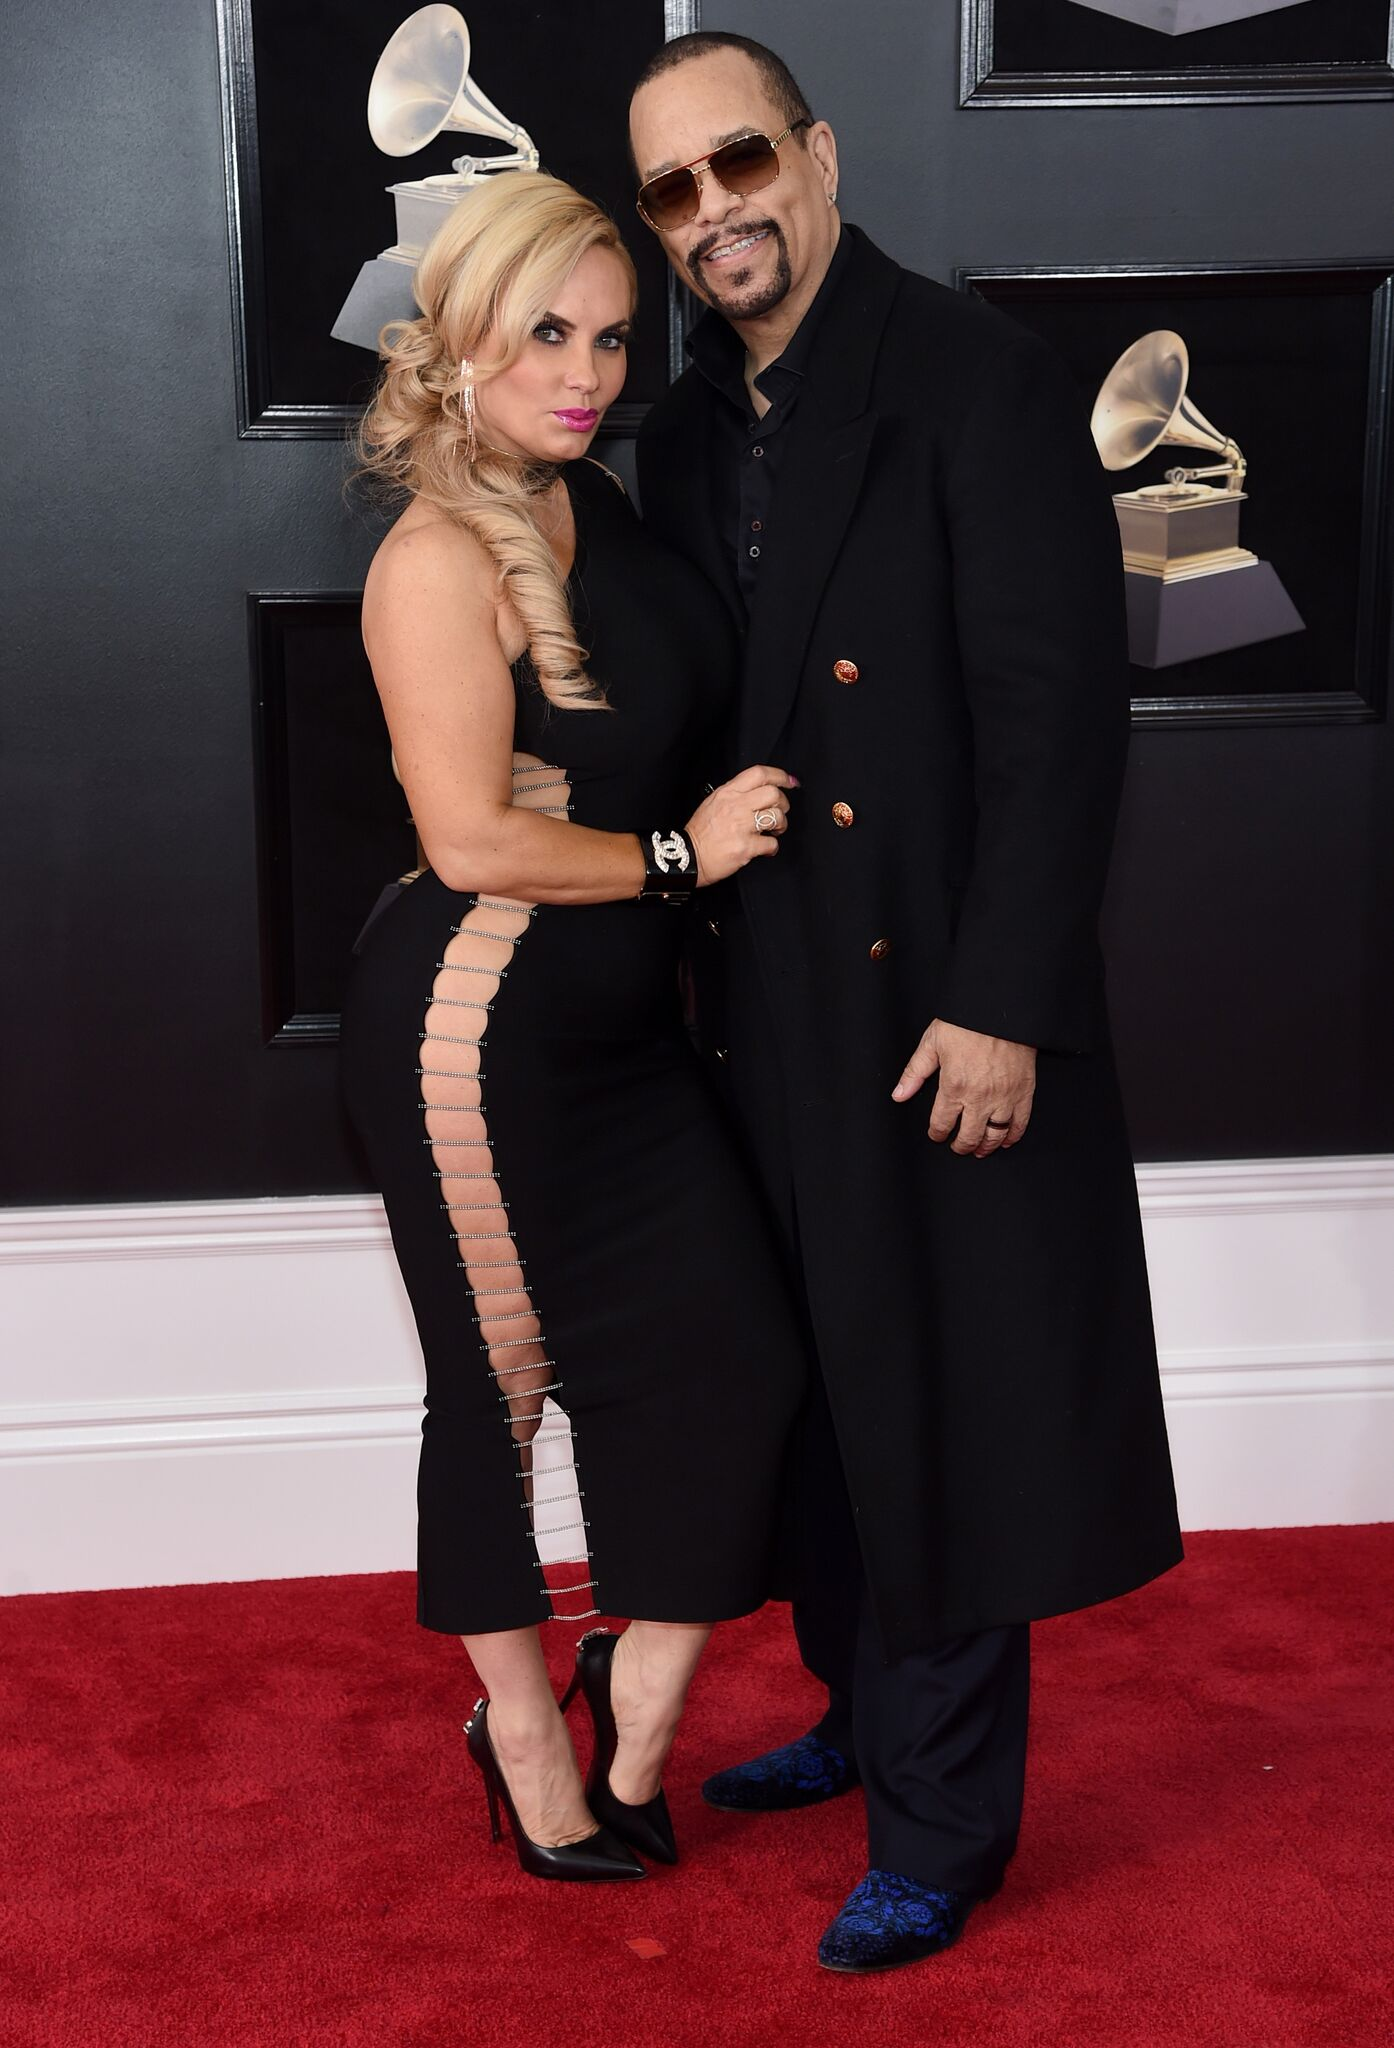 Coco Austin and Ice-T attend the 60th Annual GRAMMY Awards   Getty Images